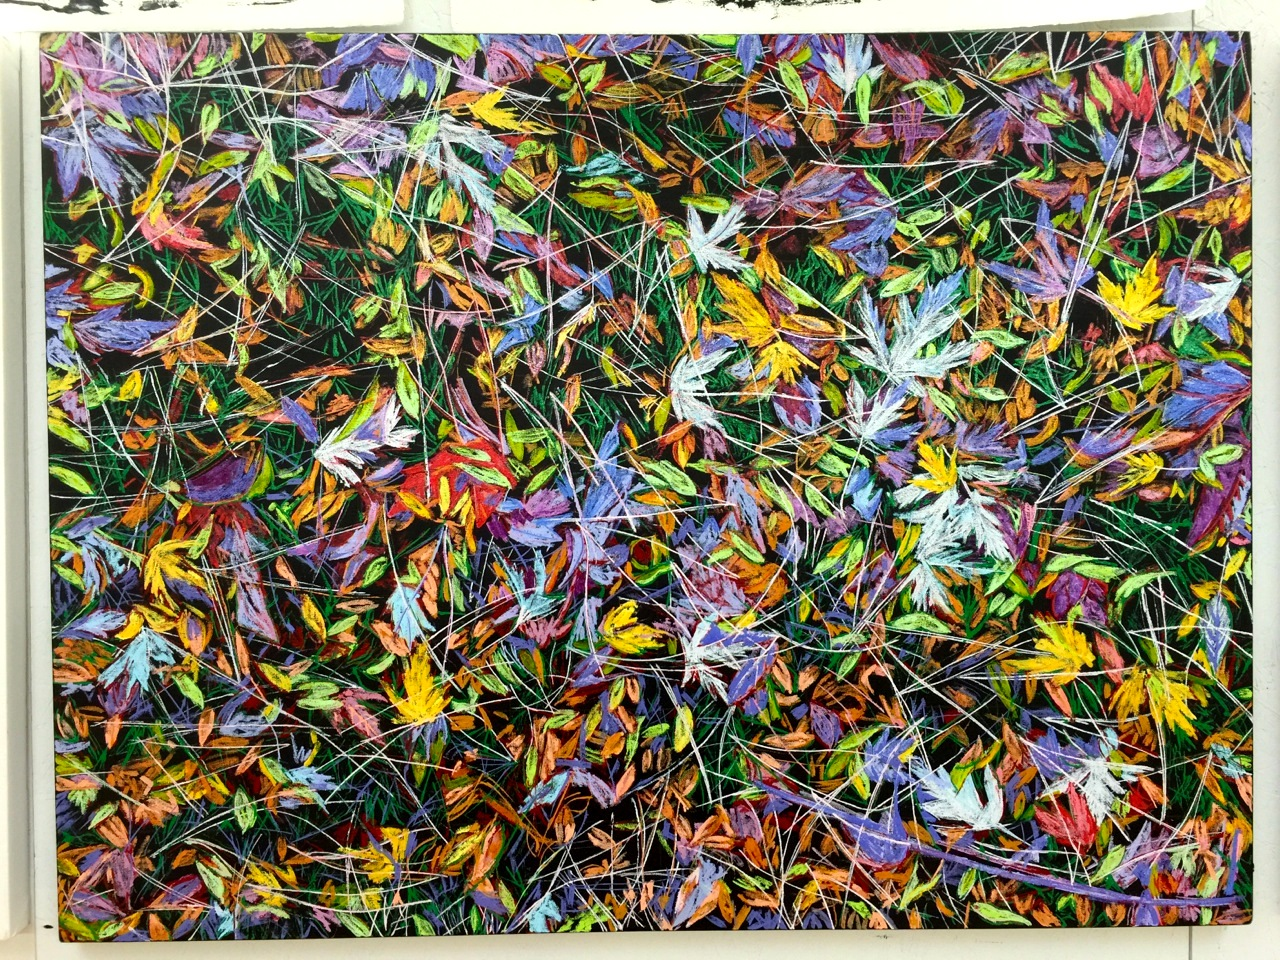 Jan Serr, Leaves and Branches II, 36x48 inches, oil on linen - in progress